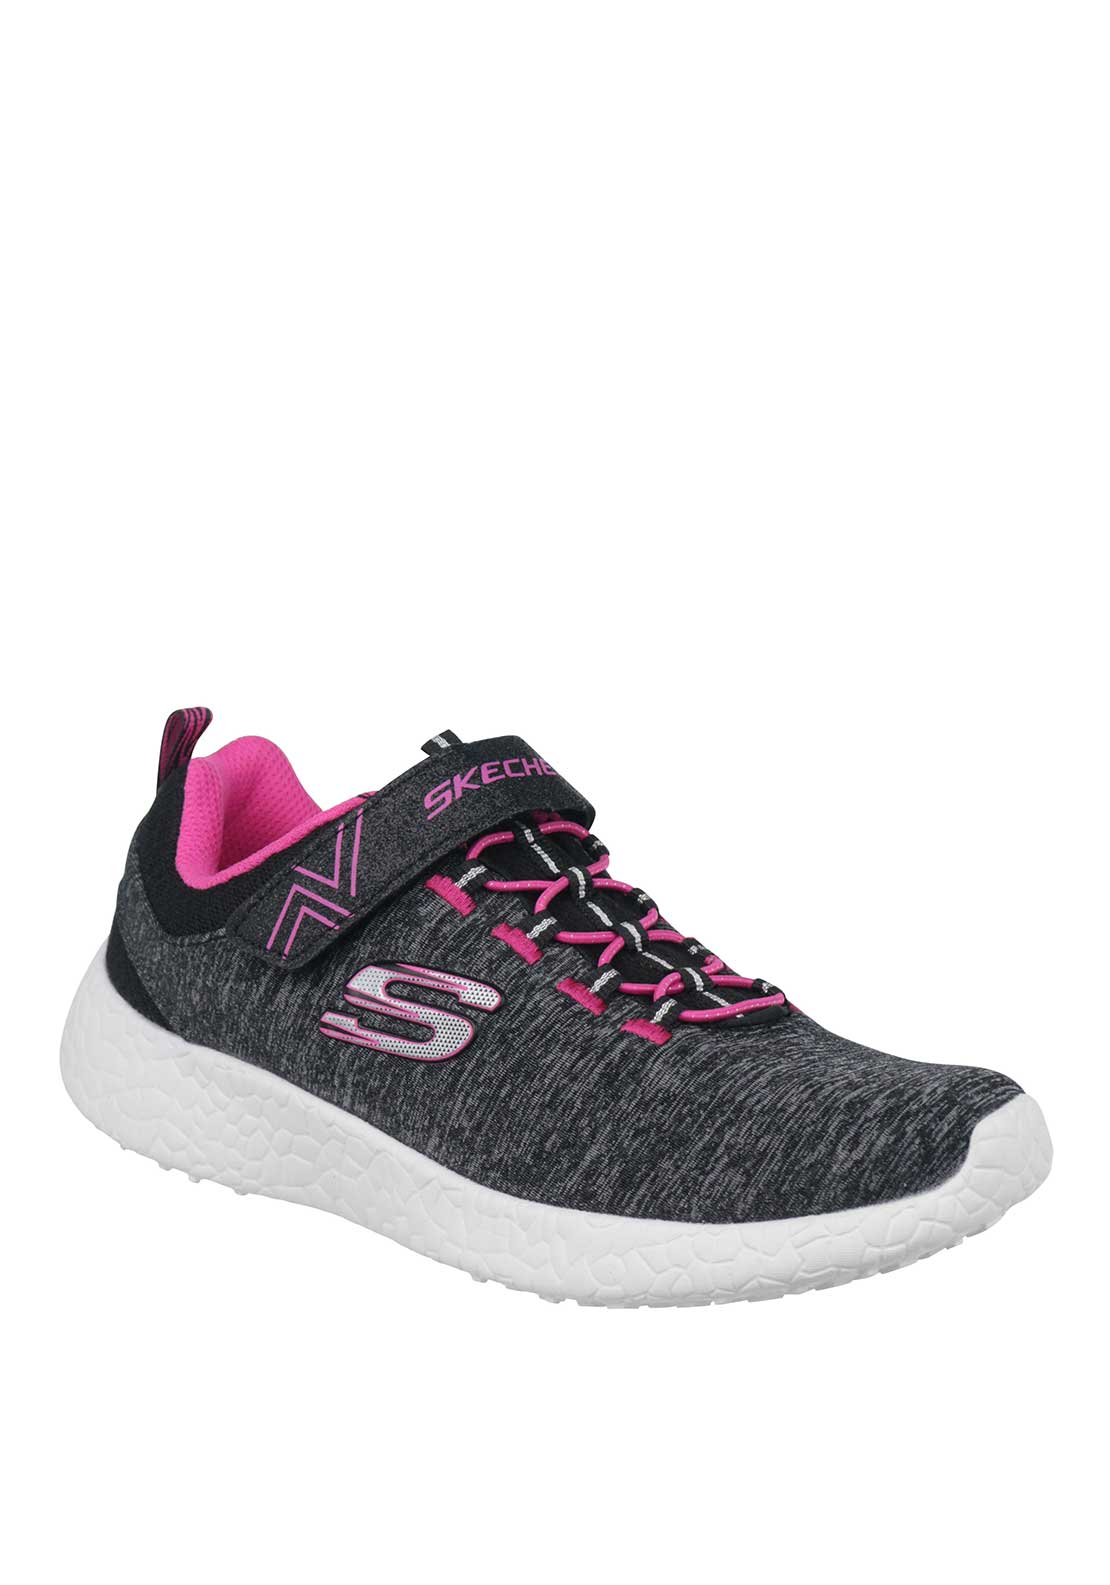 Skechers Girls Burst Velcro Runners, Grey